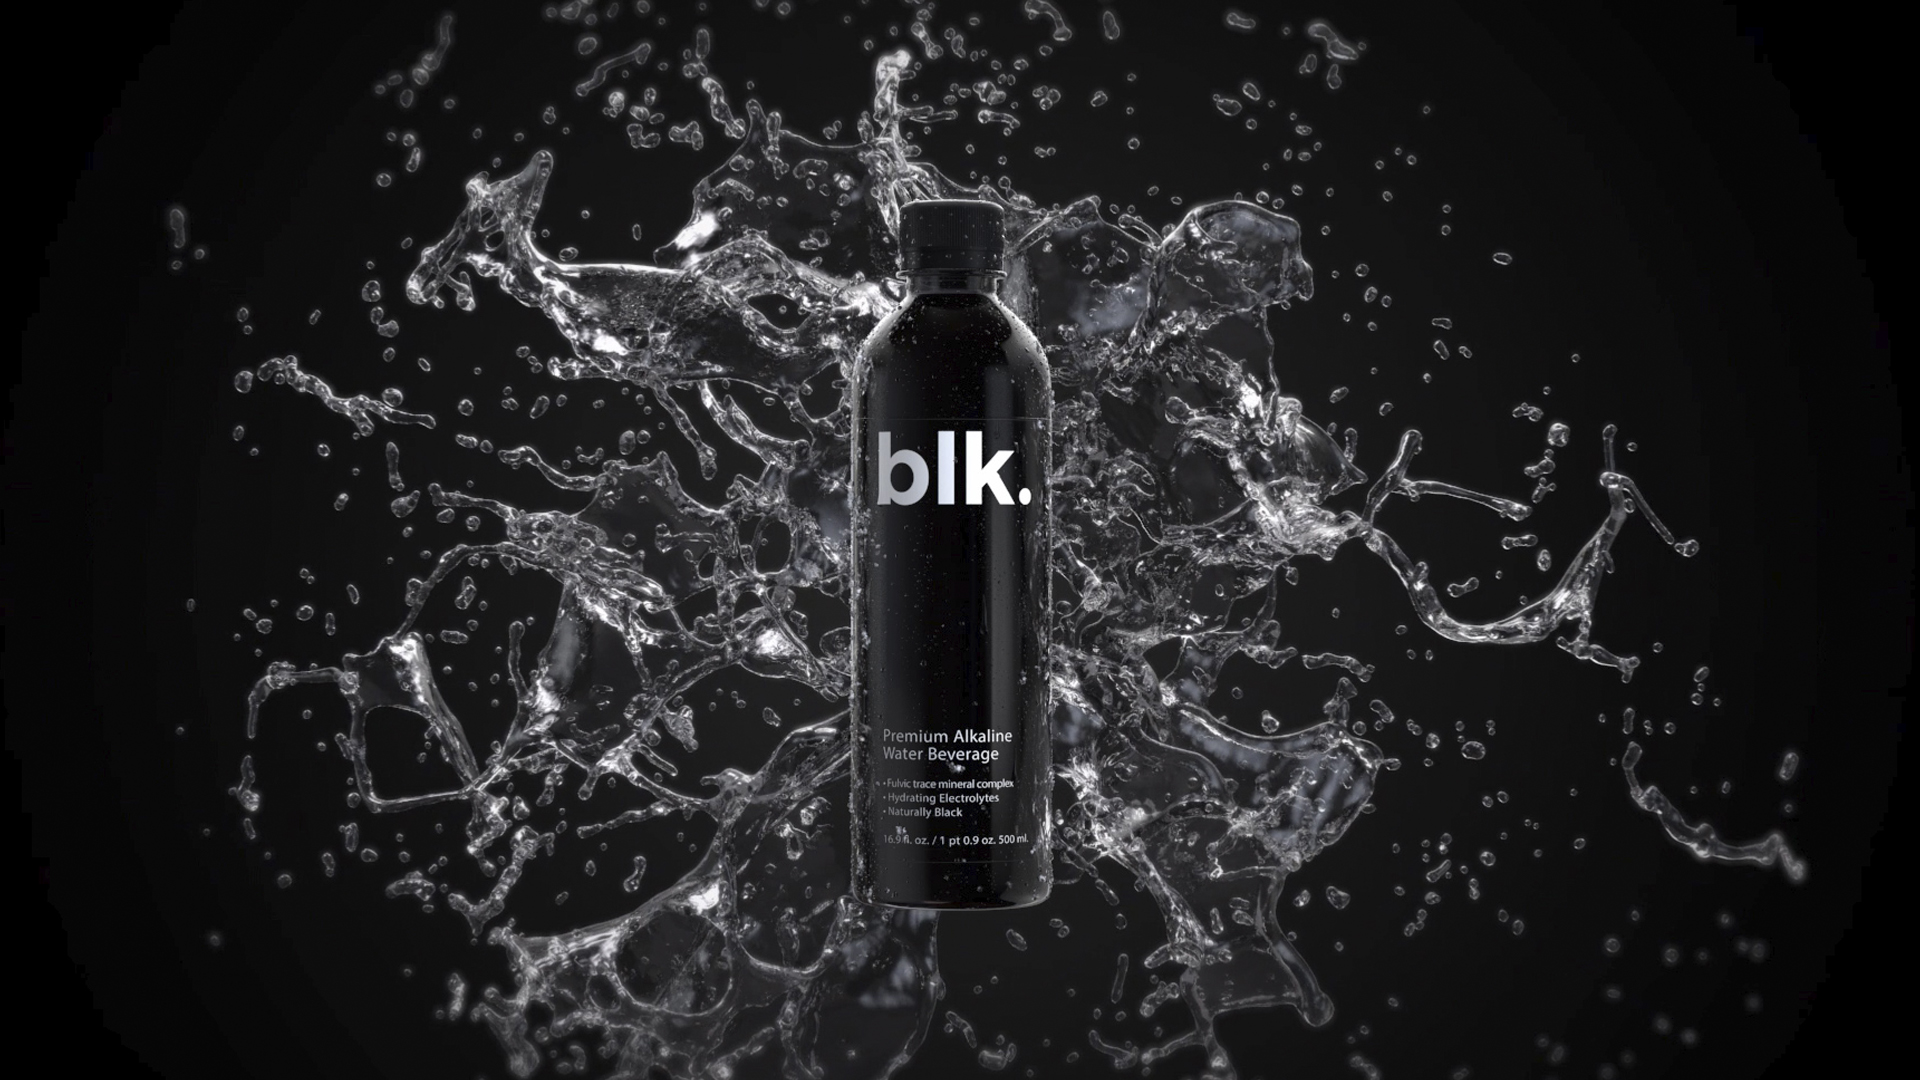 Blk Website Design Preview